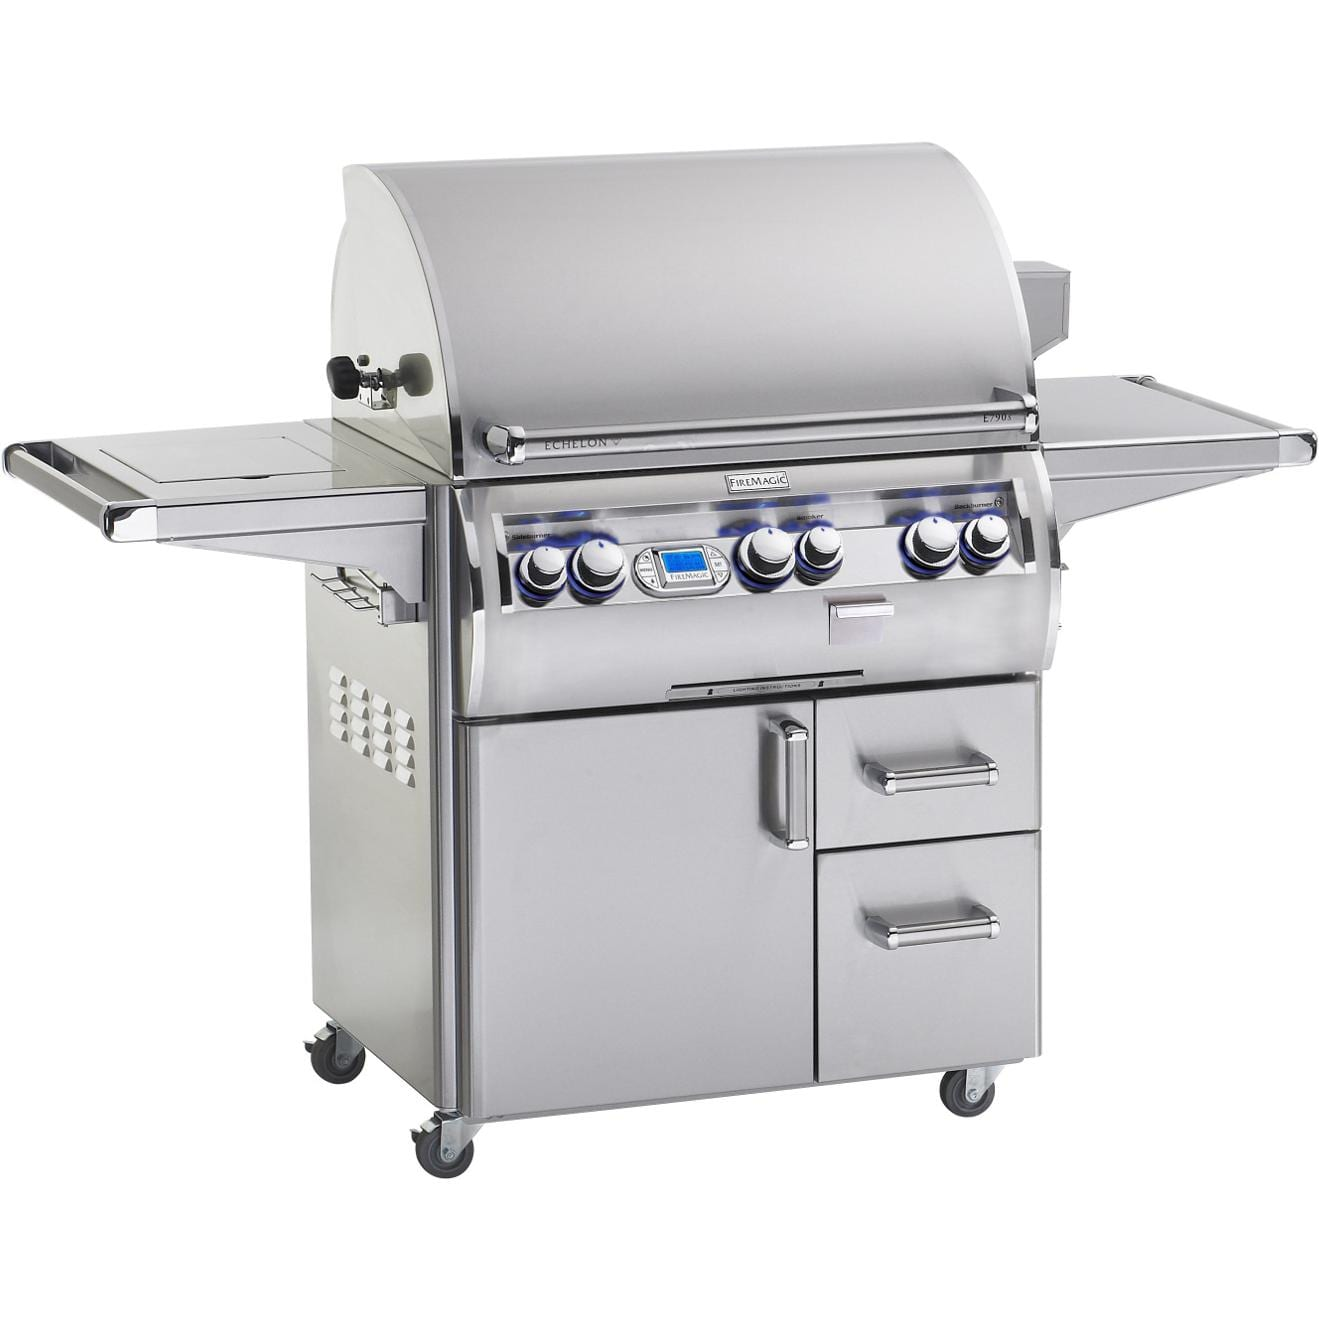 Fire Magic Echelon Diamond E790s Propane Grill